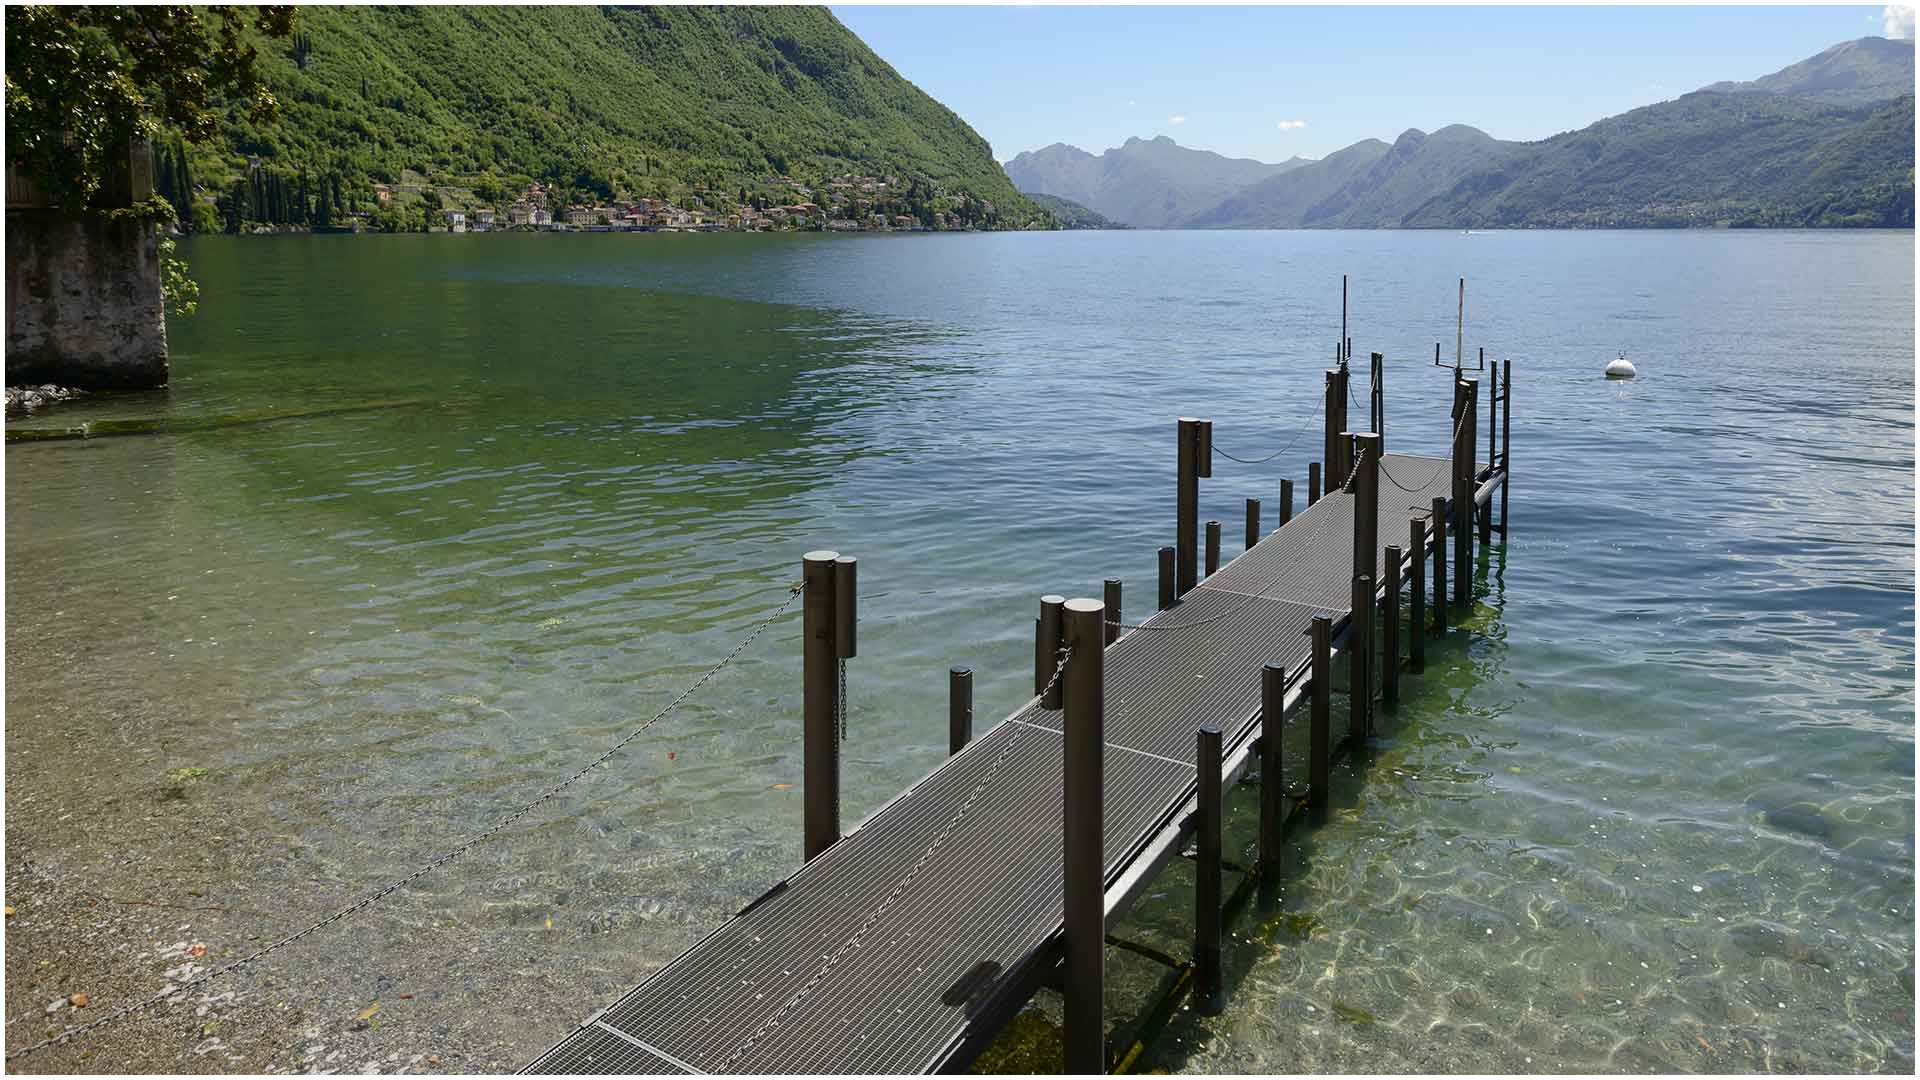 beach north lake lecco